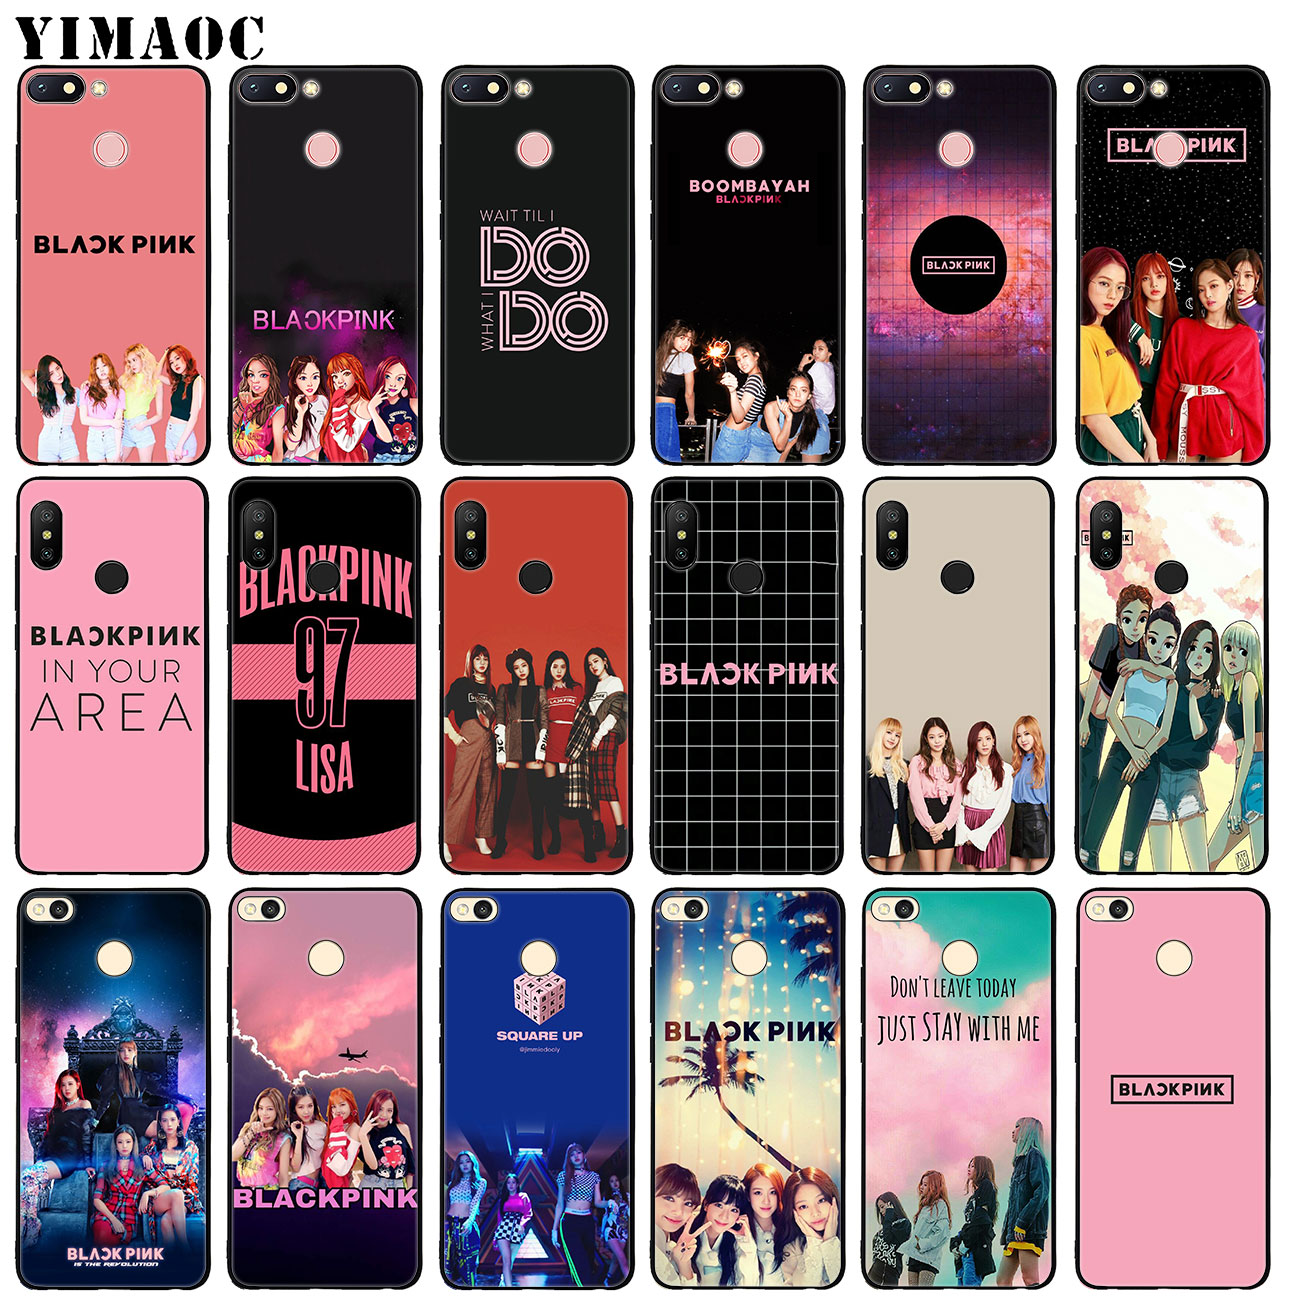 Phone Bags & Cases Fitted Cases Yimaoc Jennie Blackpink Kpop Lisa Soft Silicone Phone Case For Xiaomi Redmi 6a 5a Note 7 4 4x 5 Plus 6 Pro Mi Plus Black Cover Highly Polished